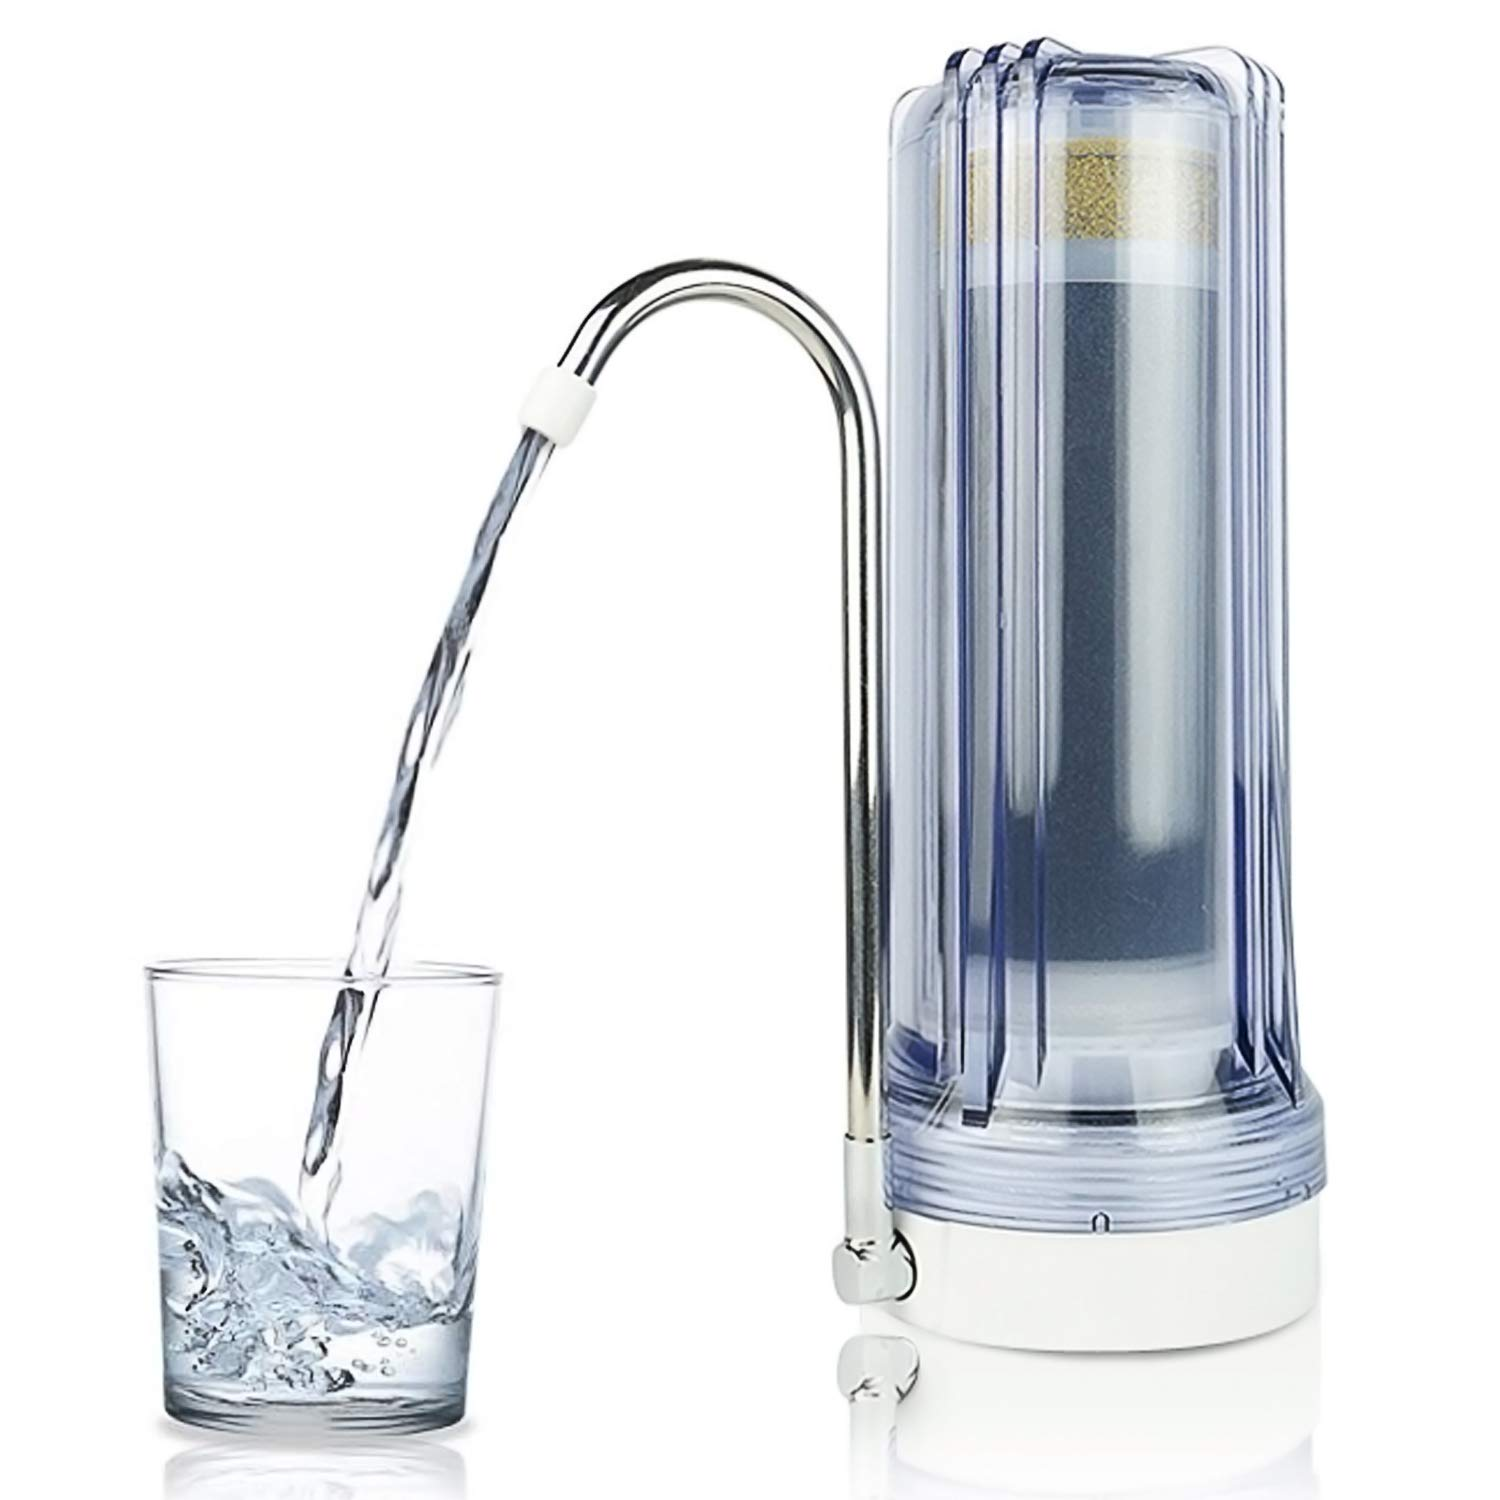 APEX MR-1030 Countertop Water Filter (Clear)